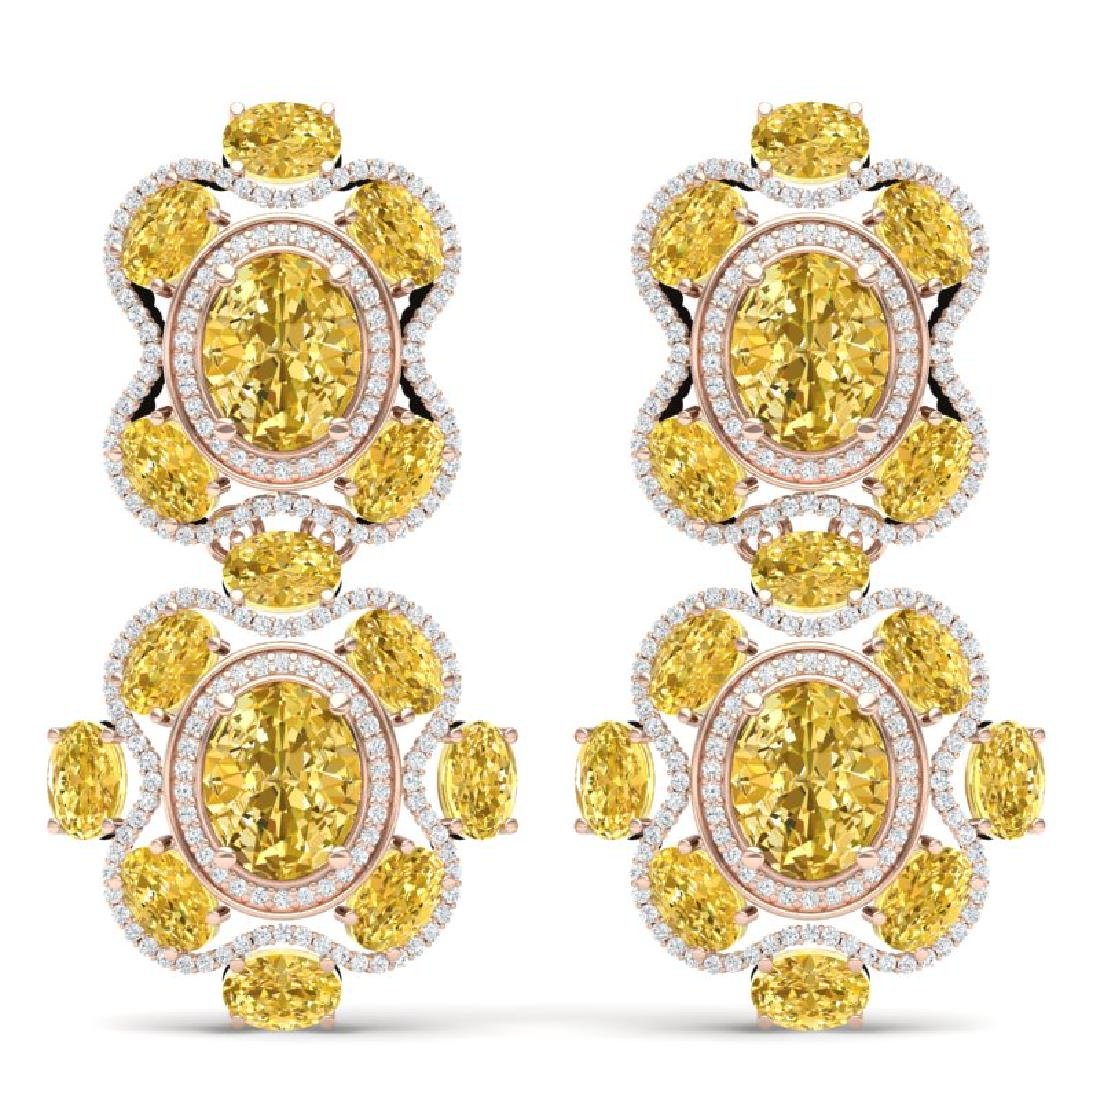 29.21 CTW Royalty Canary Citrine & VS Diamond Earrings